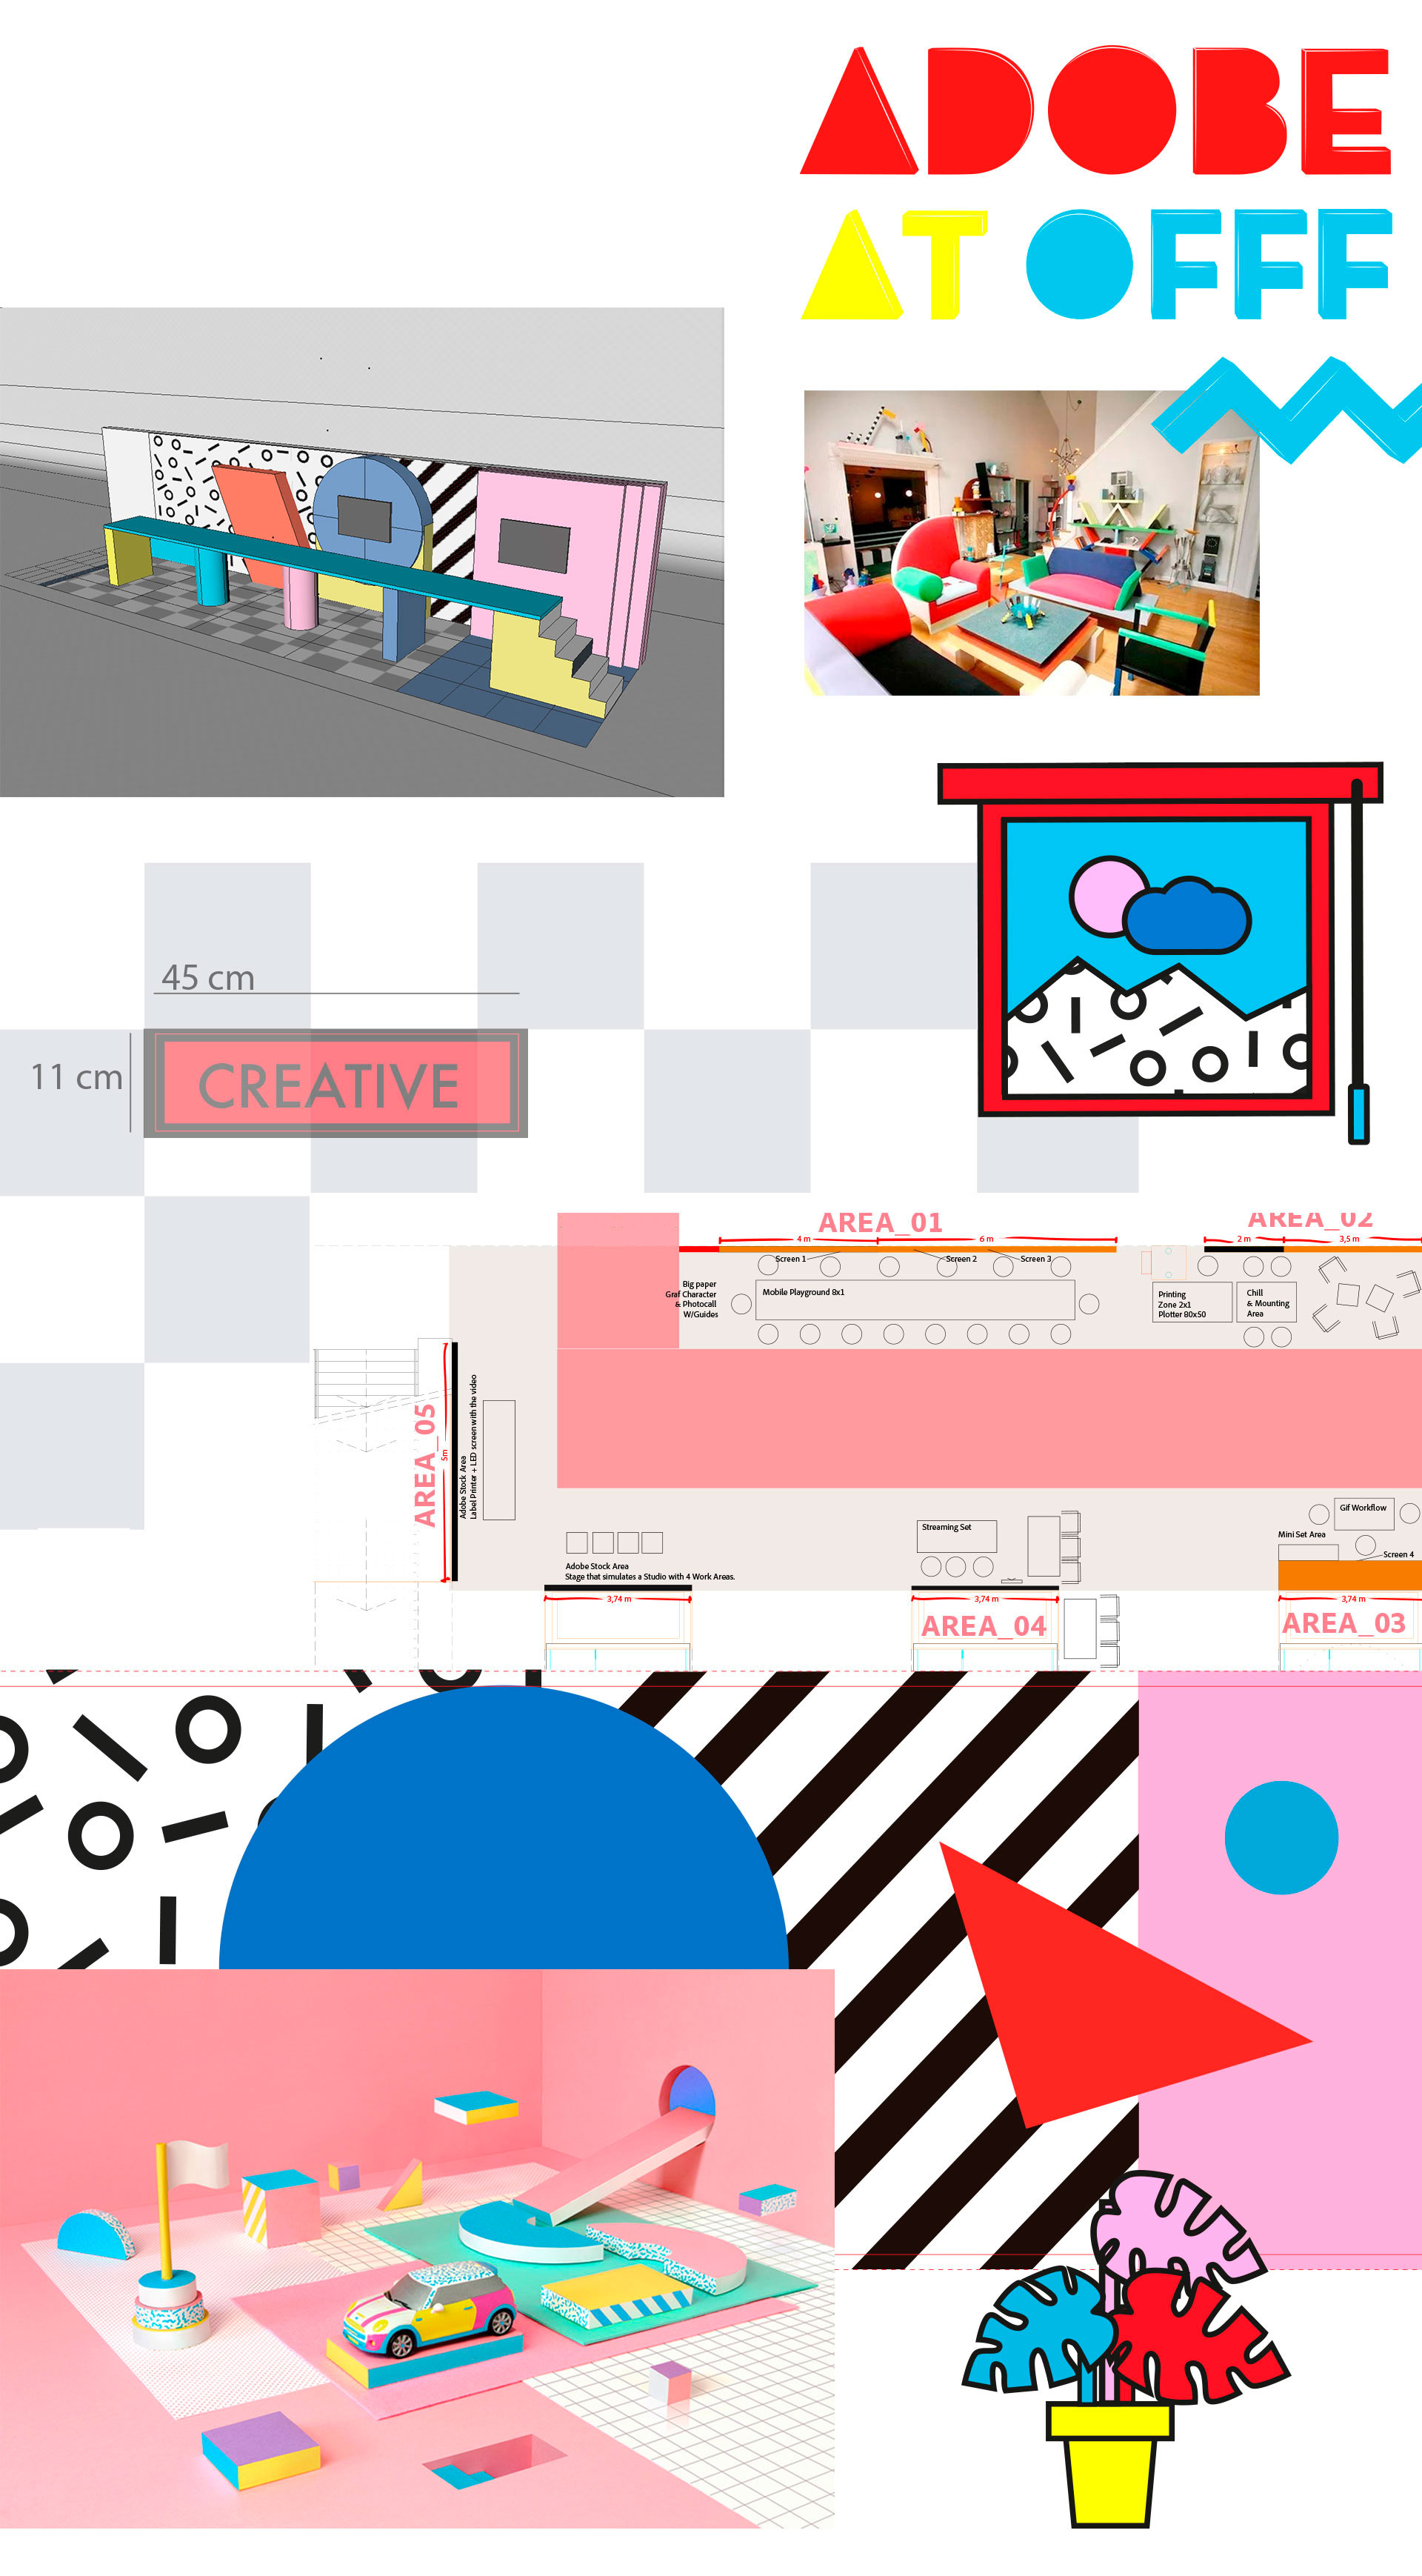 3_concepts-and-skecths_adobe-at-offf